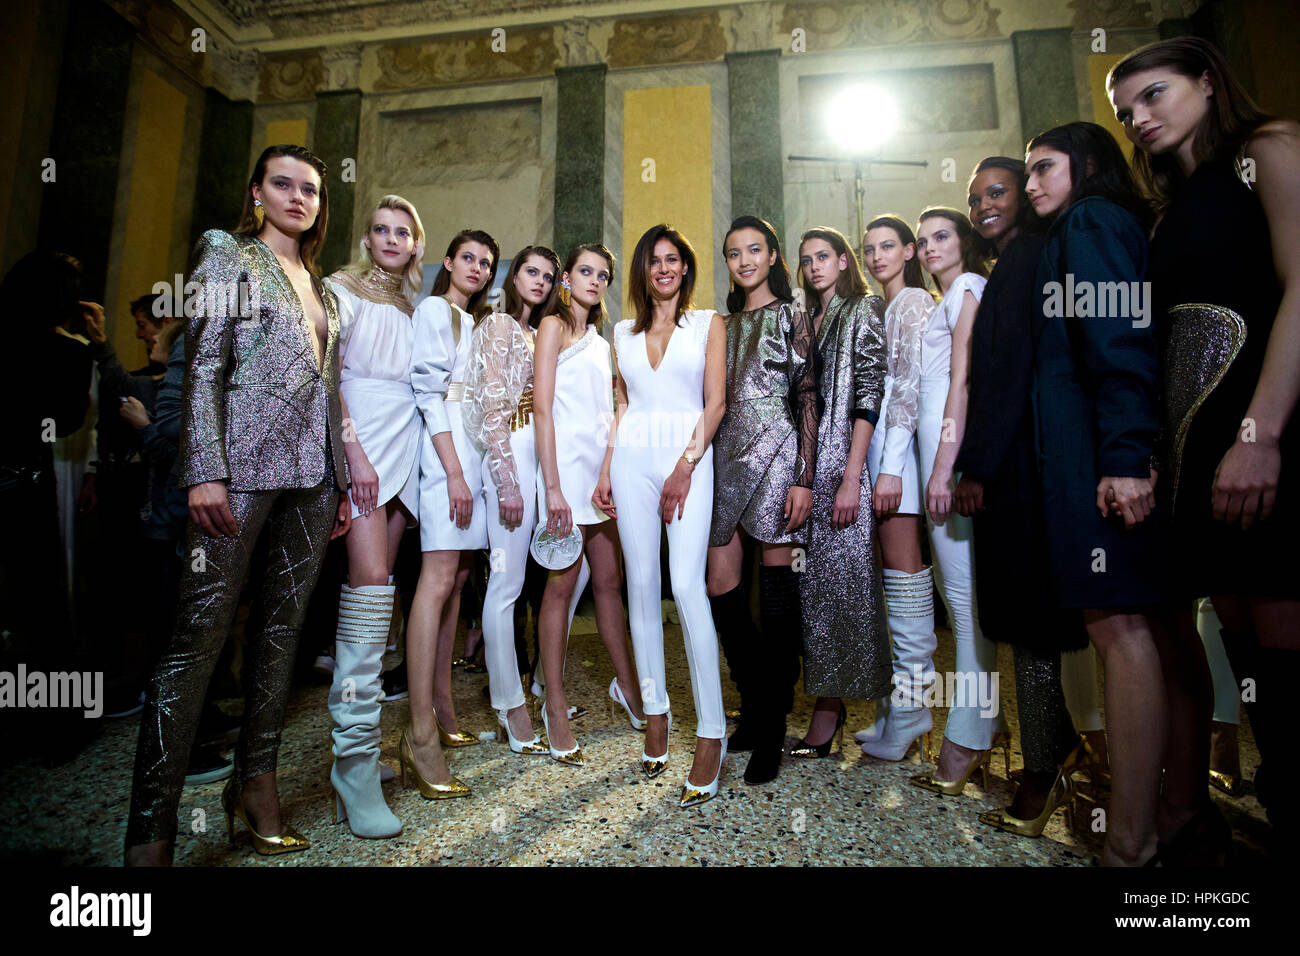 Milan, Italy. 23rd Feb, 2017. Designer Sara Cavazza (6th L) poses for a photo with her models backstage before the - Stock Image